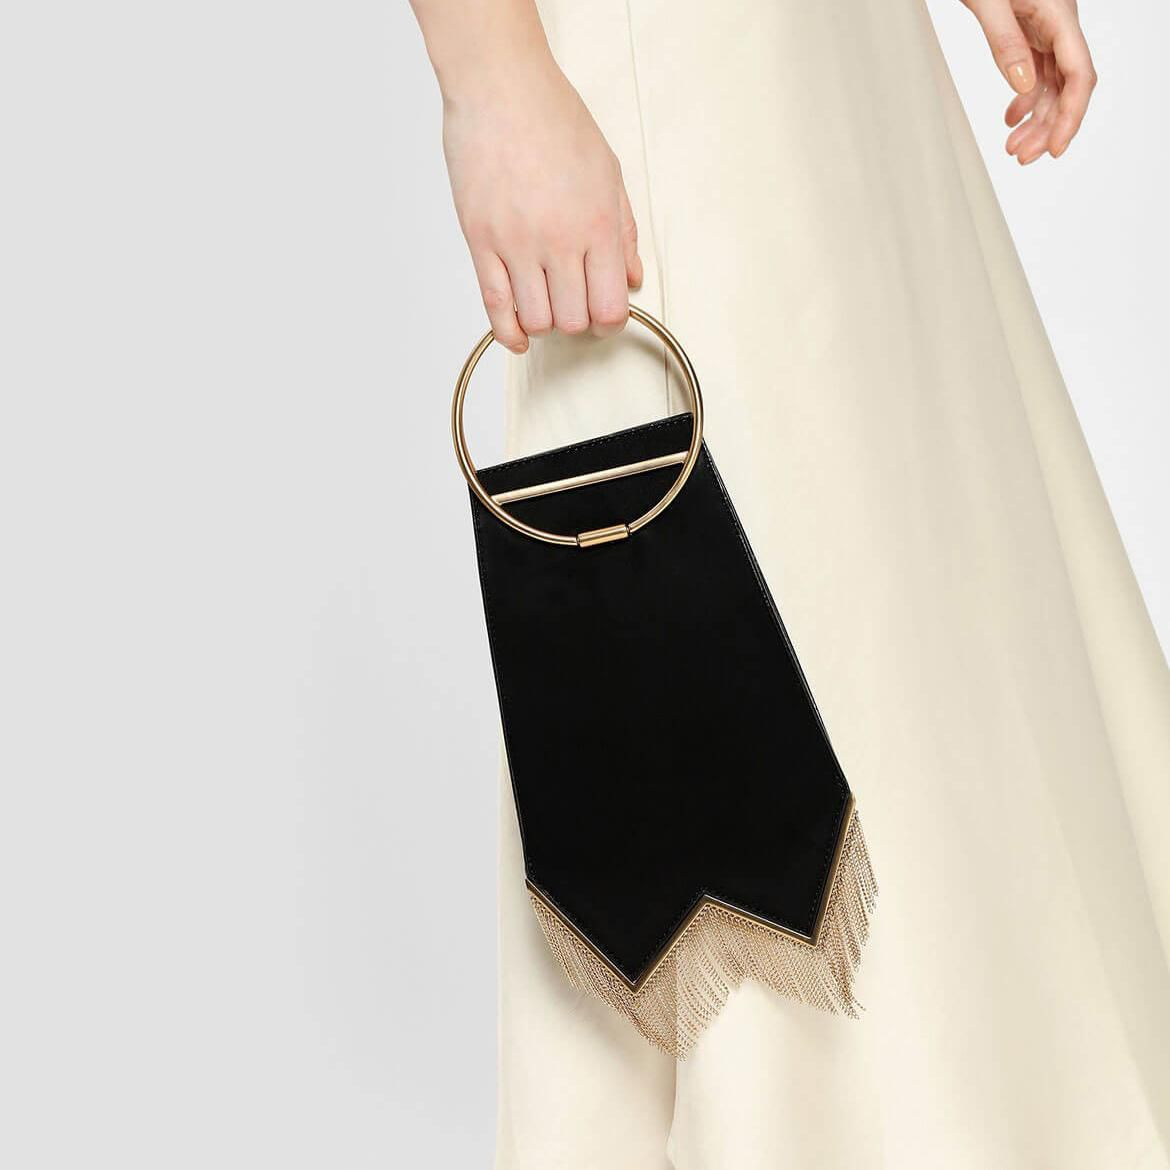 02d9f7b8376 6 New Bag Trends That Are Perfect for Brides